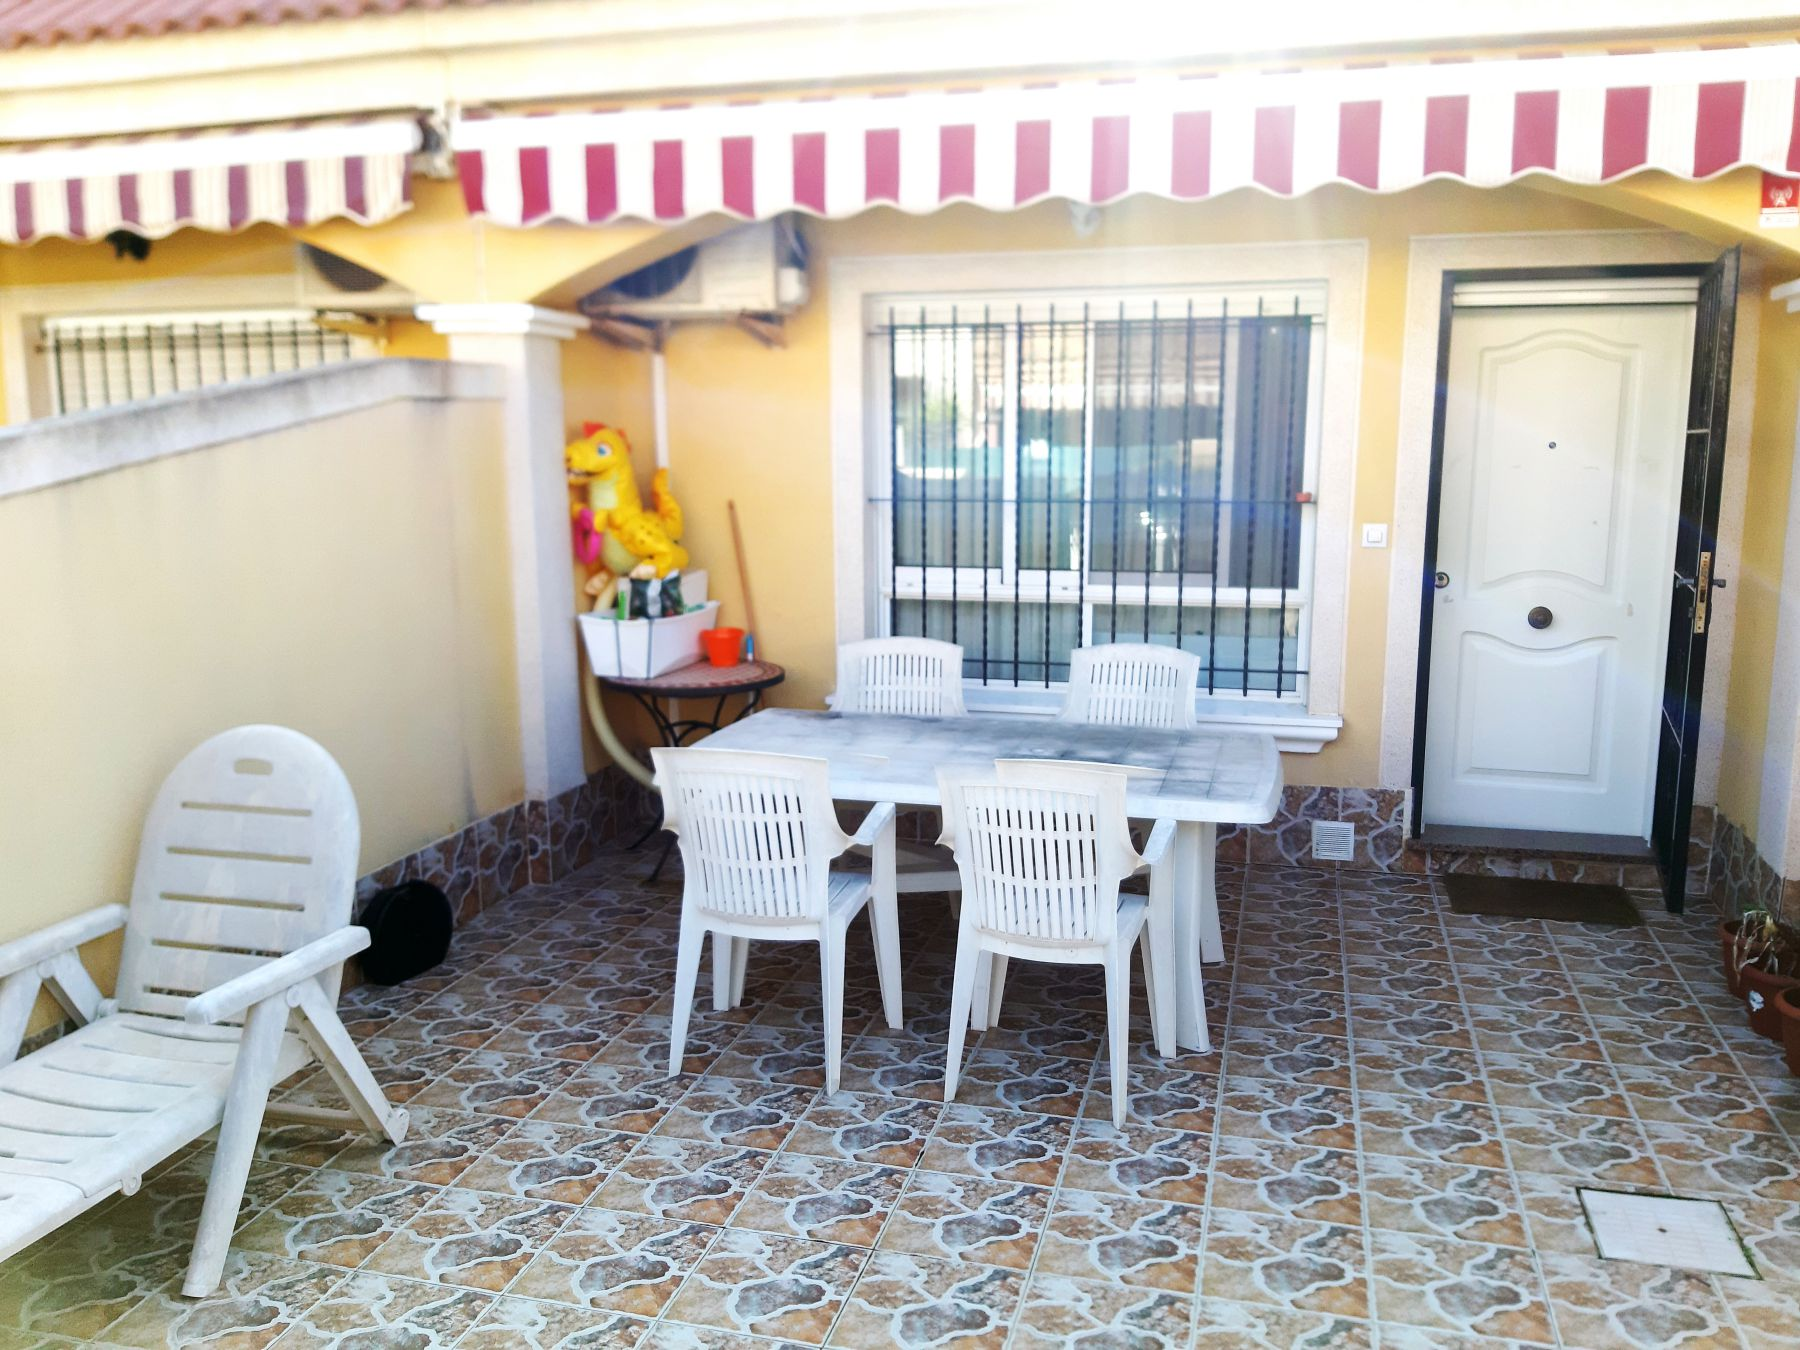 3 Bedrooms Townhouse For Sale Near the Beach in San Pedro del Pinatar